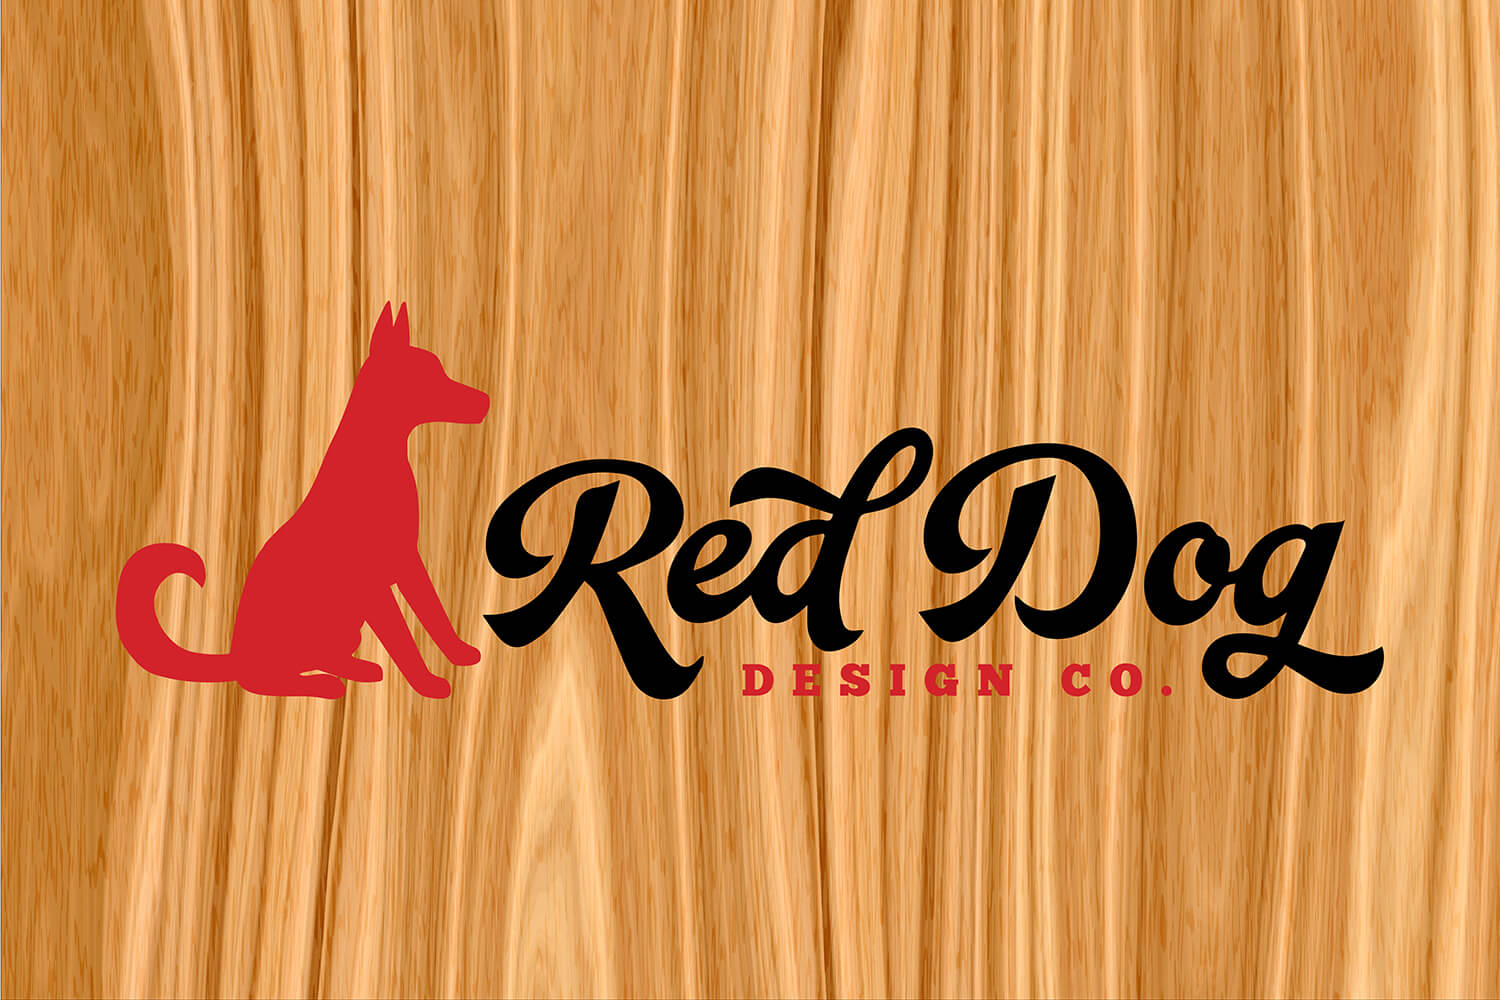 work-Red Dog Option A